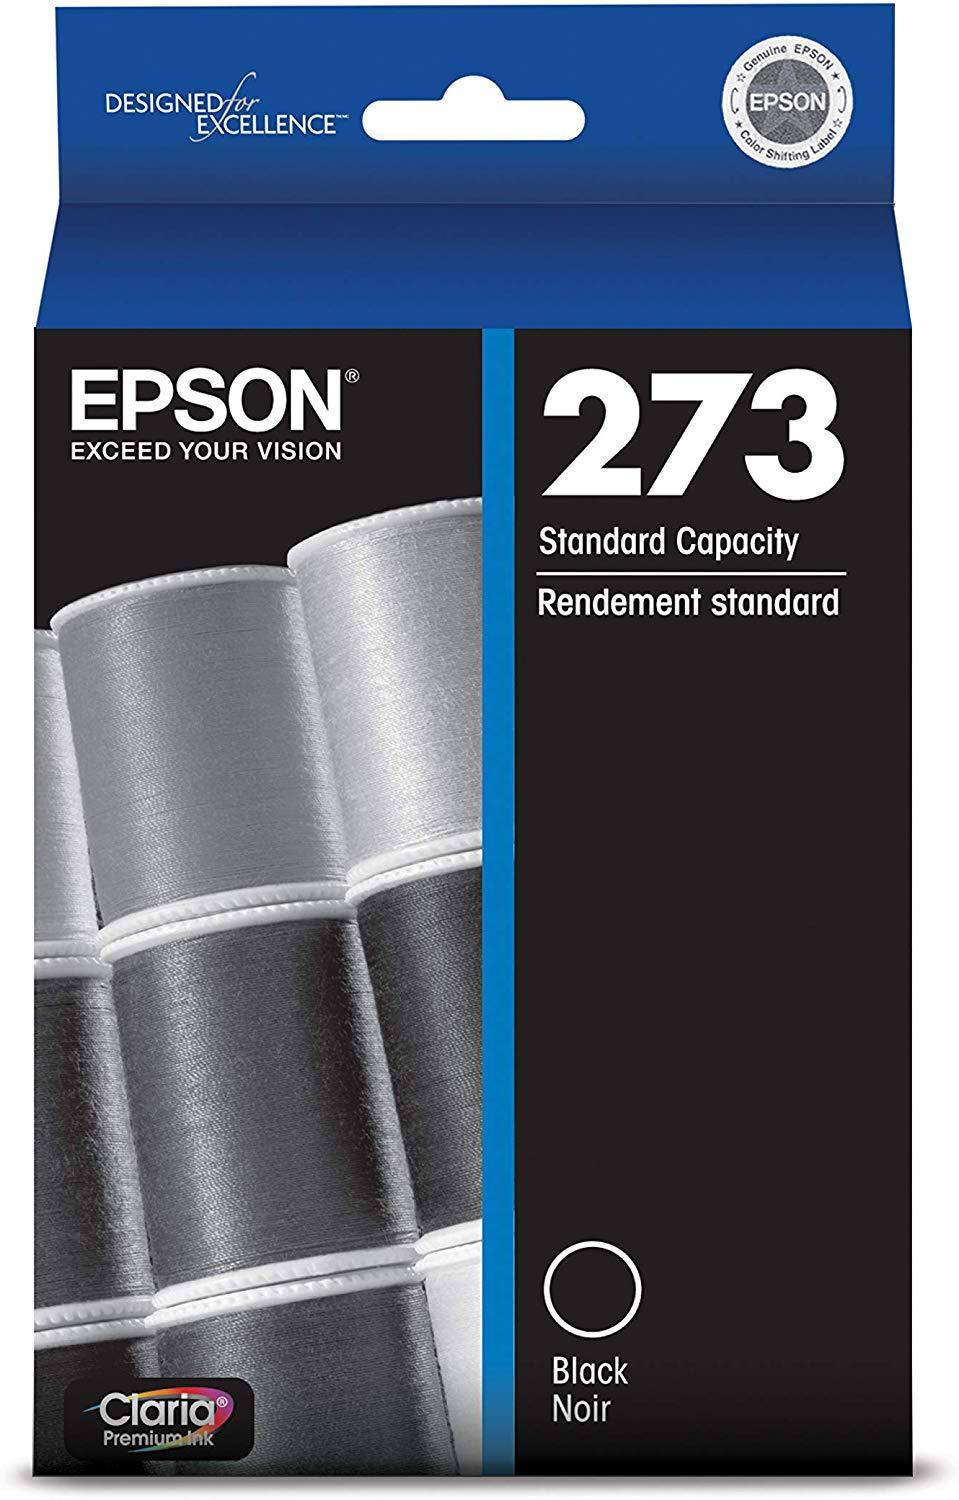 Epson T273020 273 Black Epson Claria Premium Standard-Capacity  Ink Cartridge  Ink